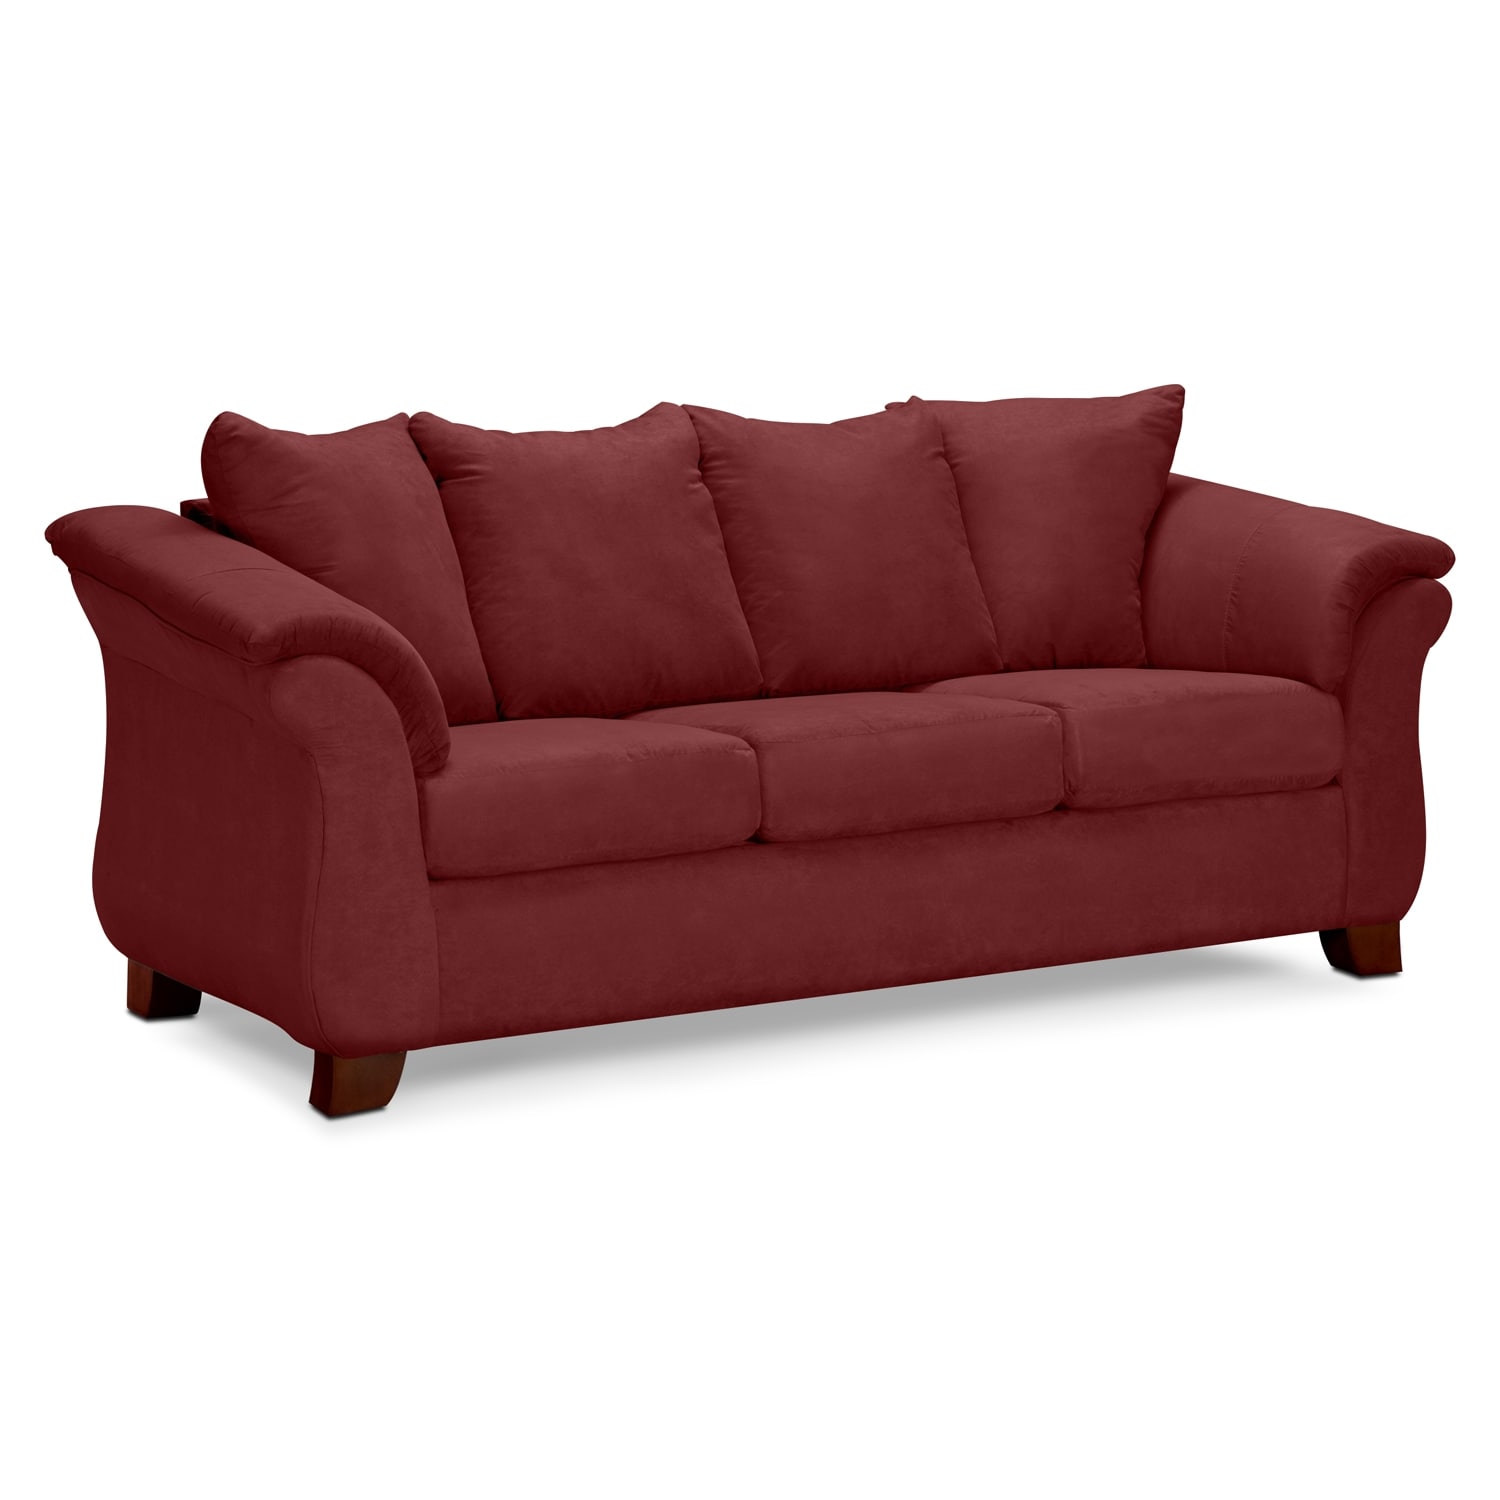 Adrian Sofa and Loveseat Set Red